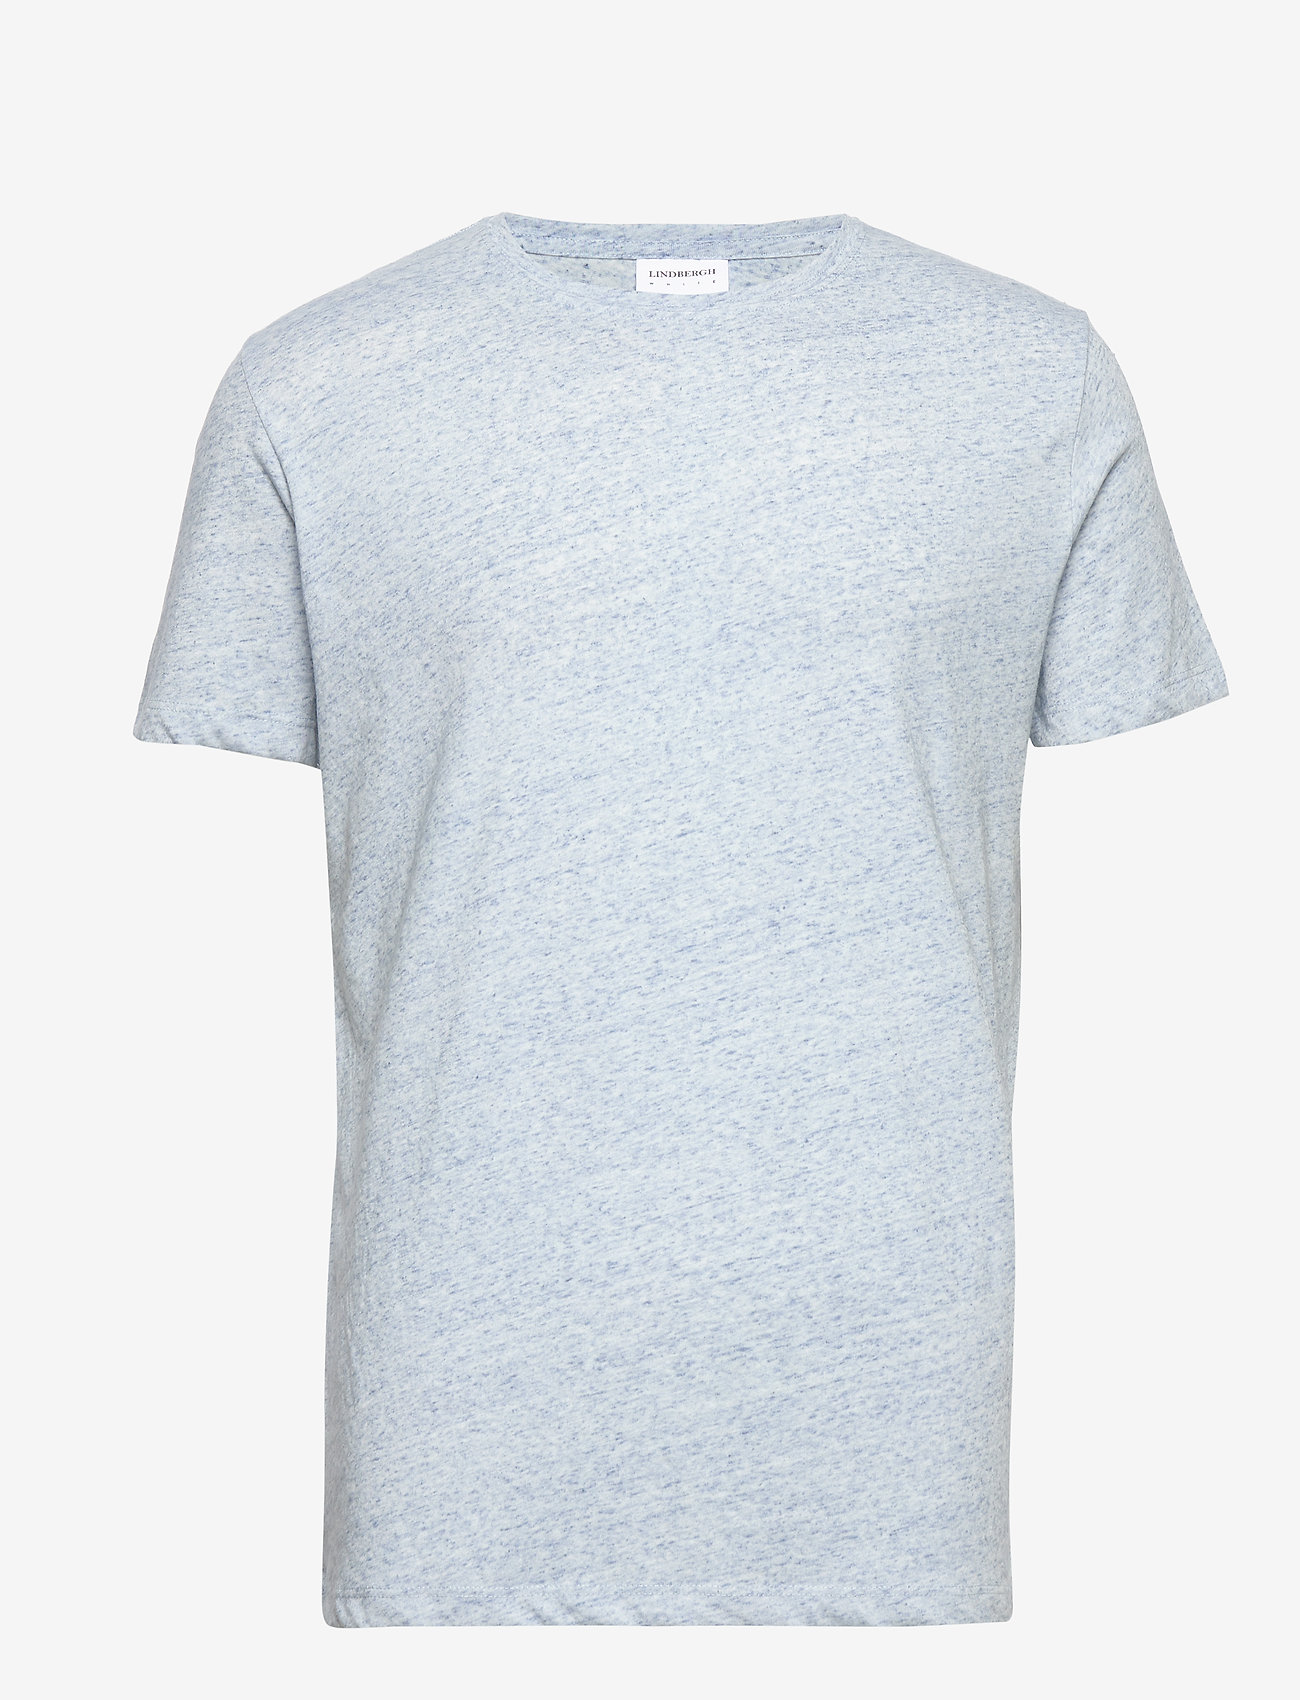 Lindbergh - Neps structure tee S/S - lyhythihaiset - lt blue - 1